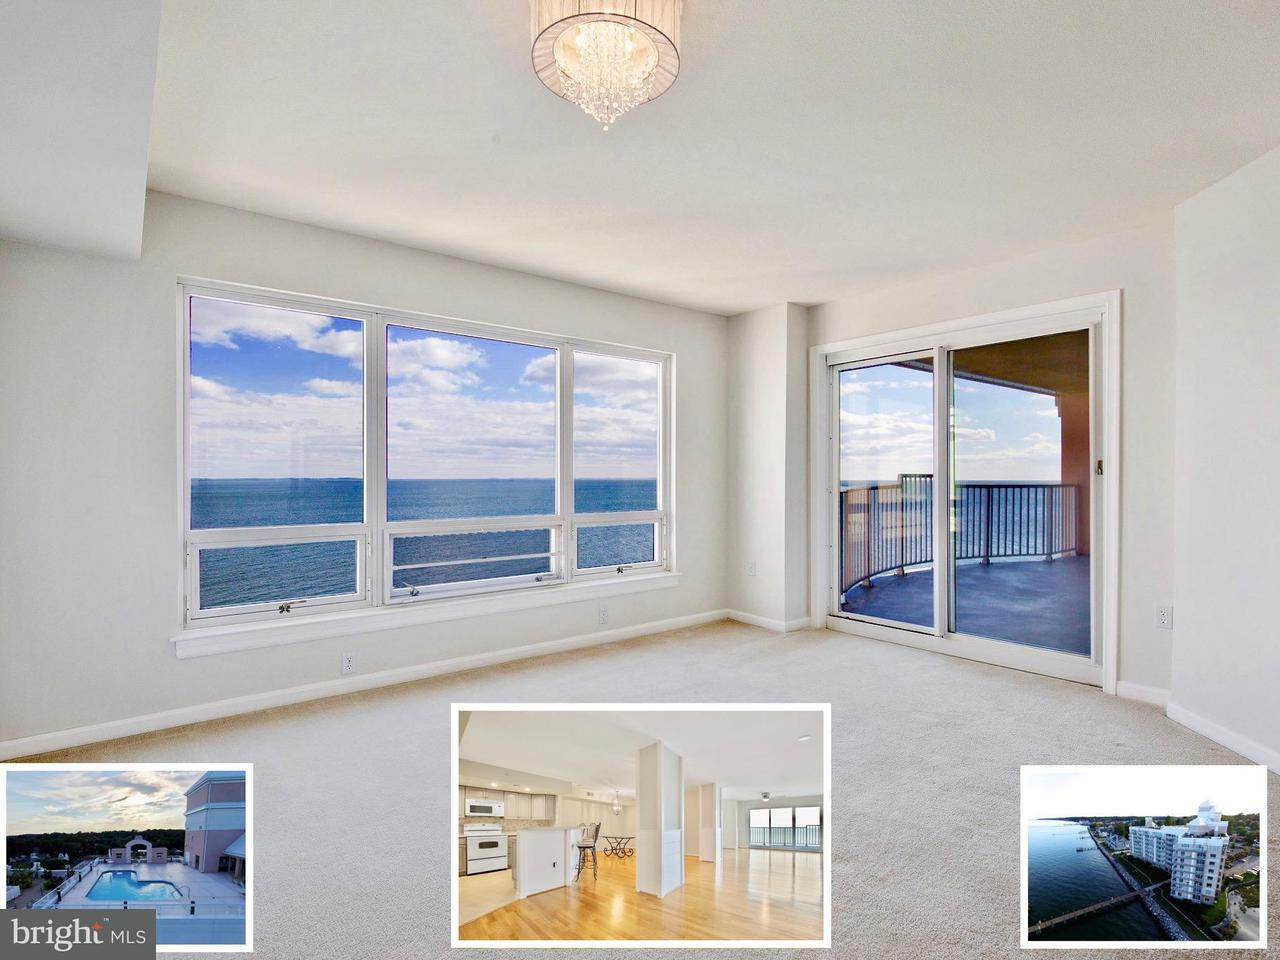 Single Family Home for Sale at 8501 BAYSIDE RD #PH2 8501 BAYSIDE RD #PH2 Chesapeake Beach, Maryland 20732 United States